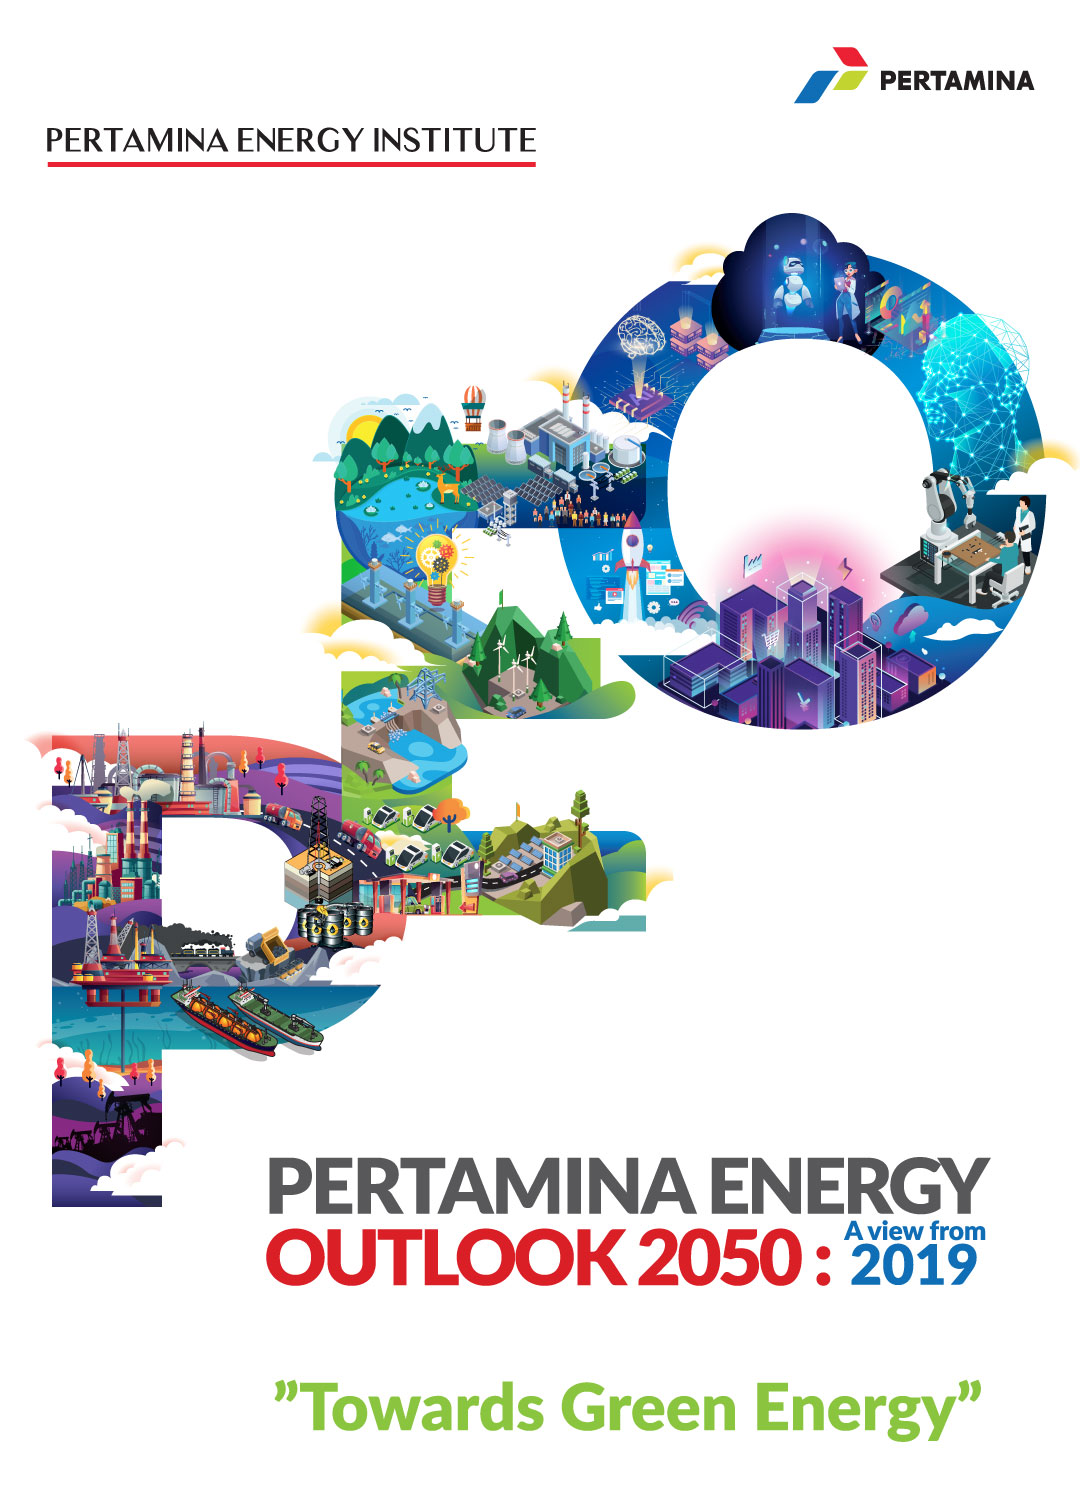 "BAB I: Pertamina Energi Outlook 2050: A View From 2019 ""Towards Green Energy"""